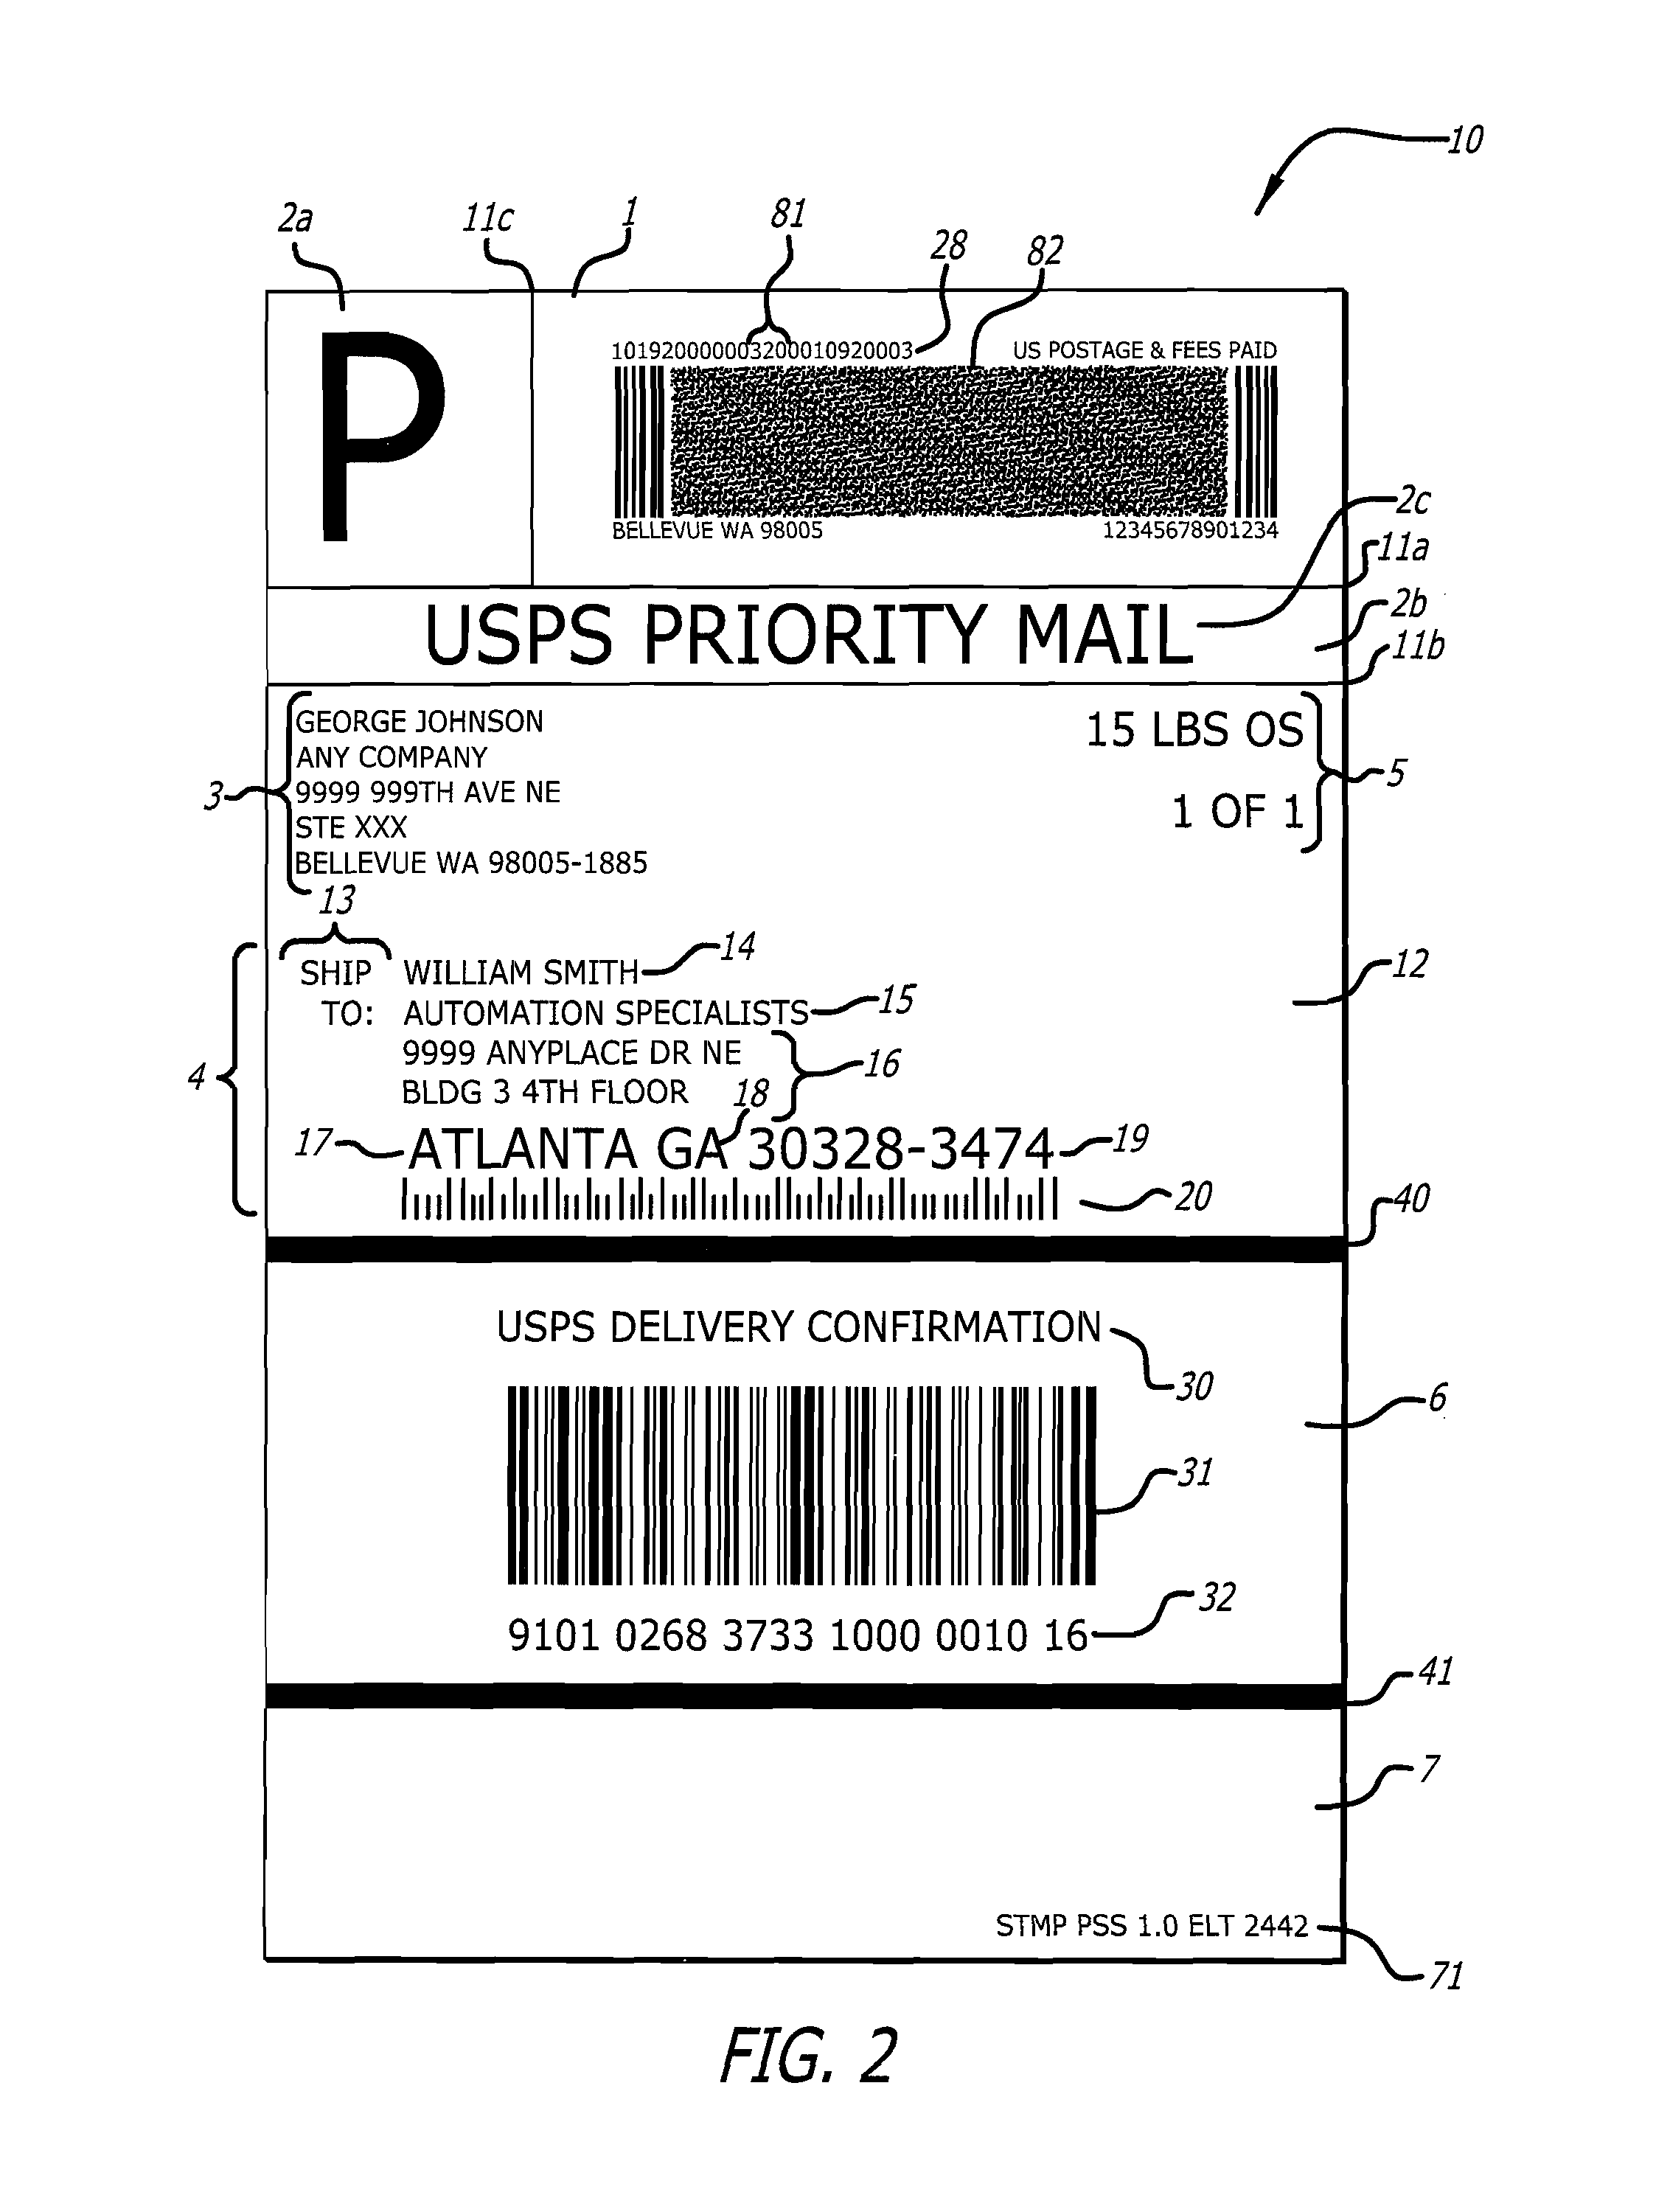 shipping label Google Patents